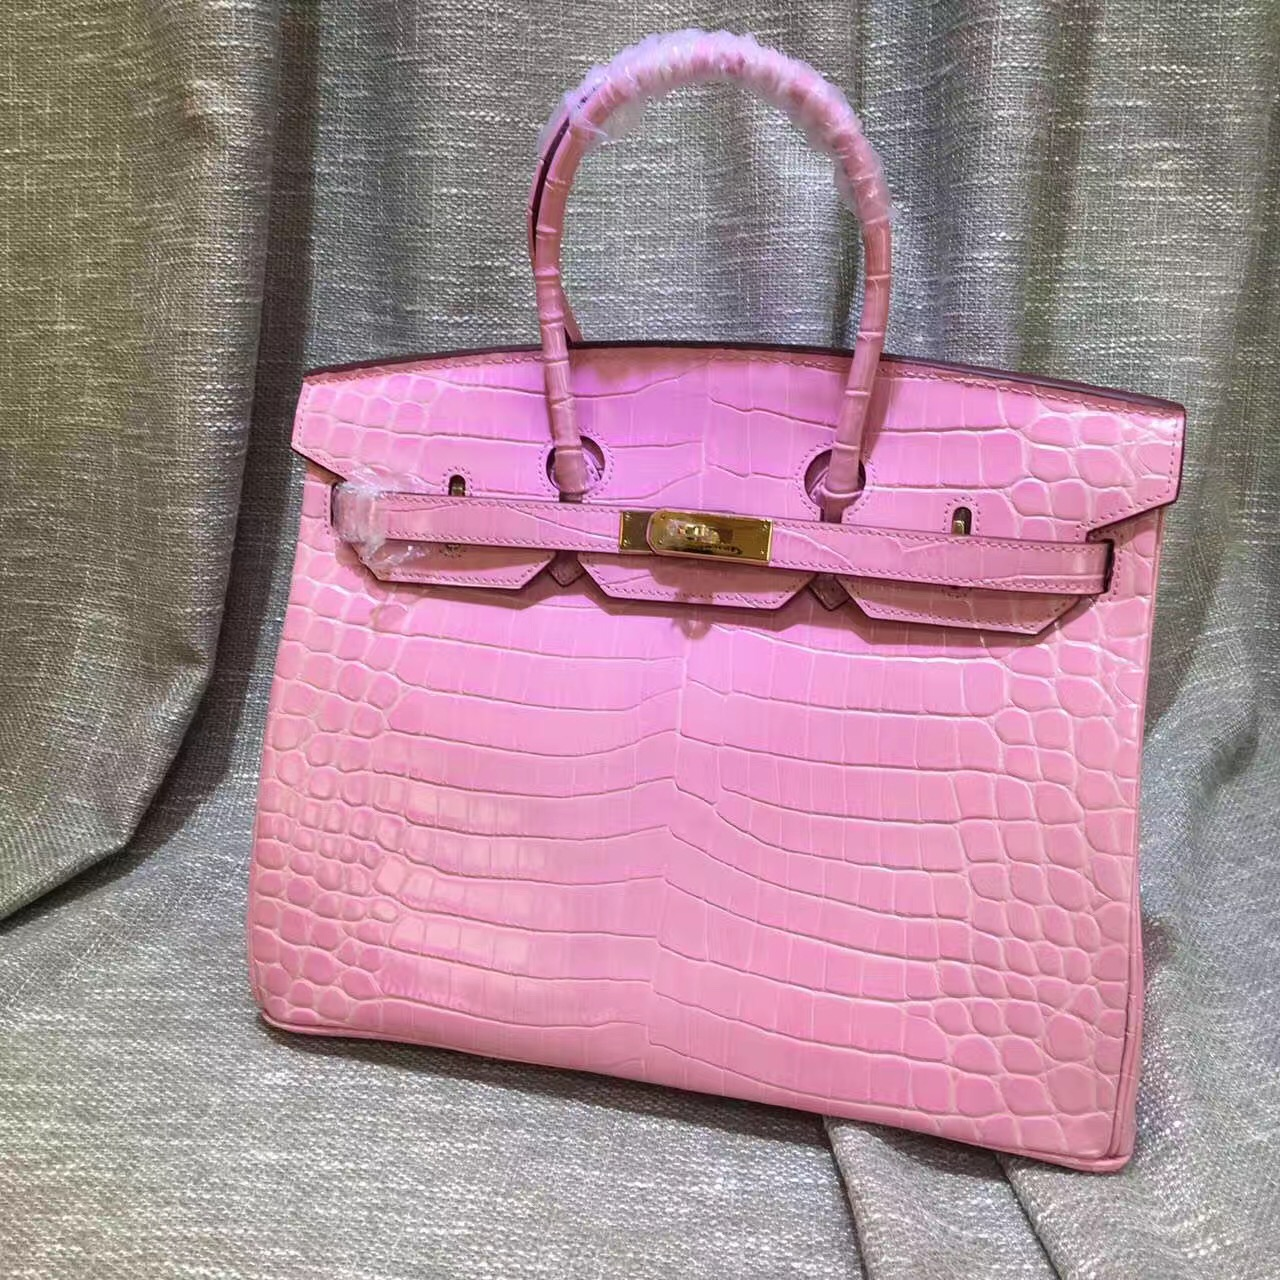 4fab8be8bf Hermes Birkin 35cm Handbag Crocodile Leather Pink Gold  RH0326 ...